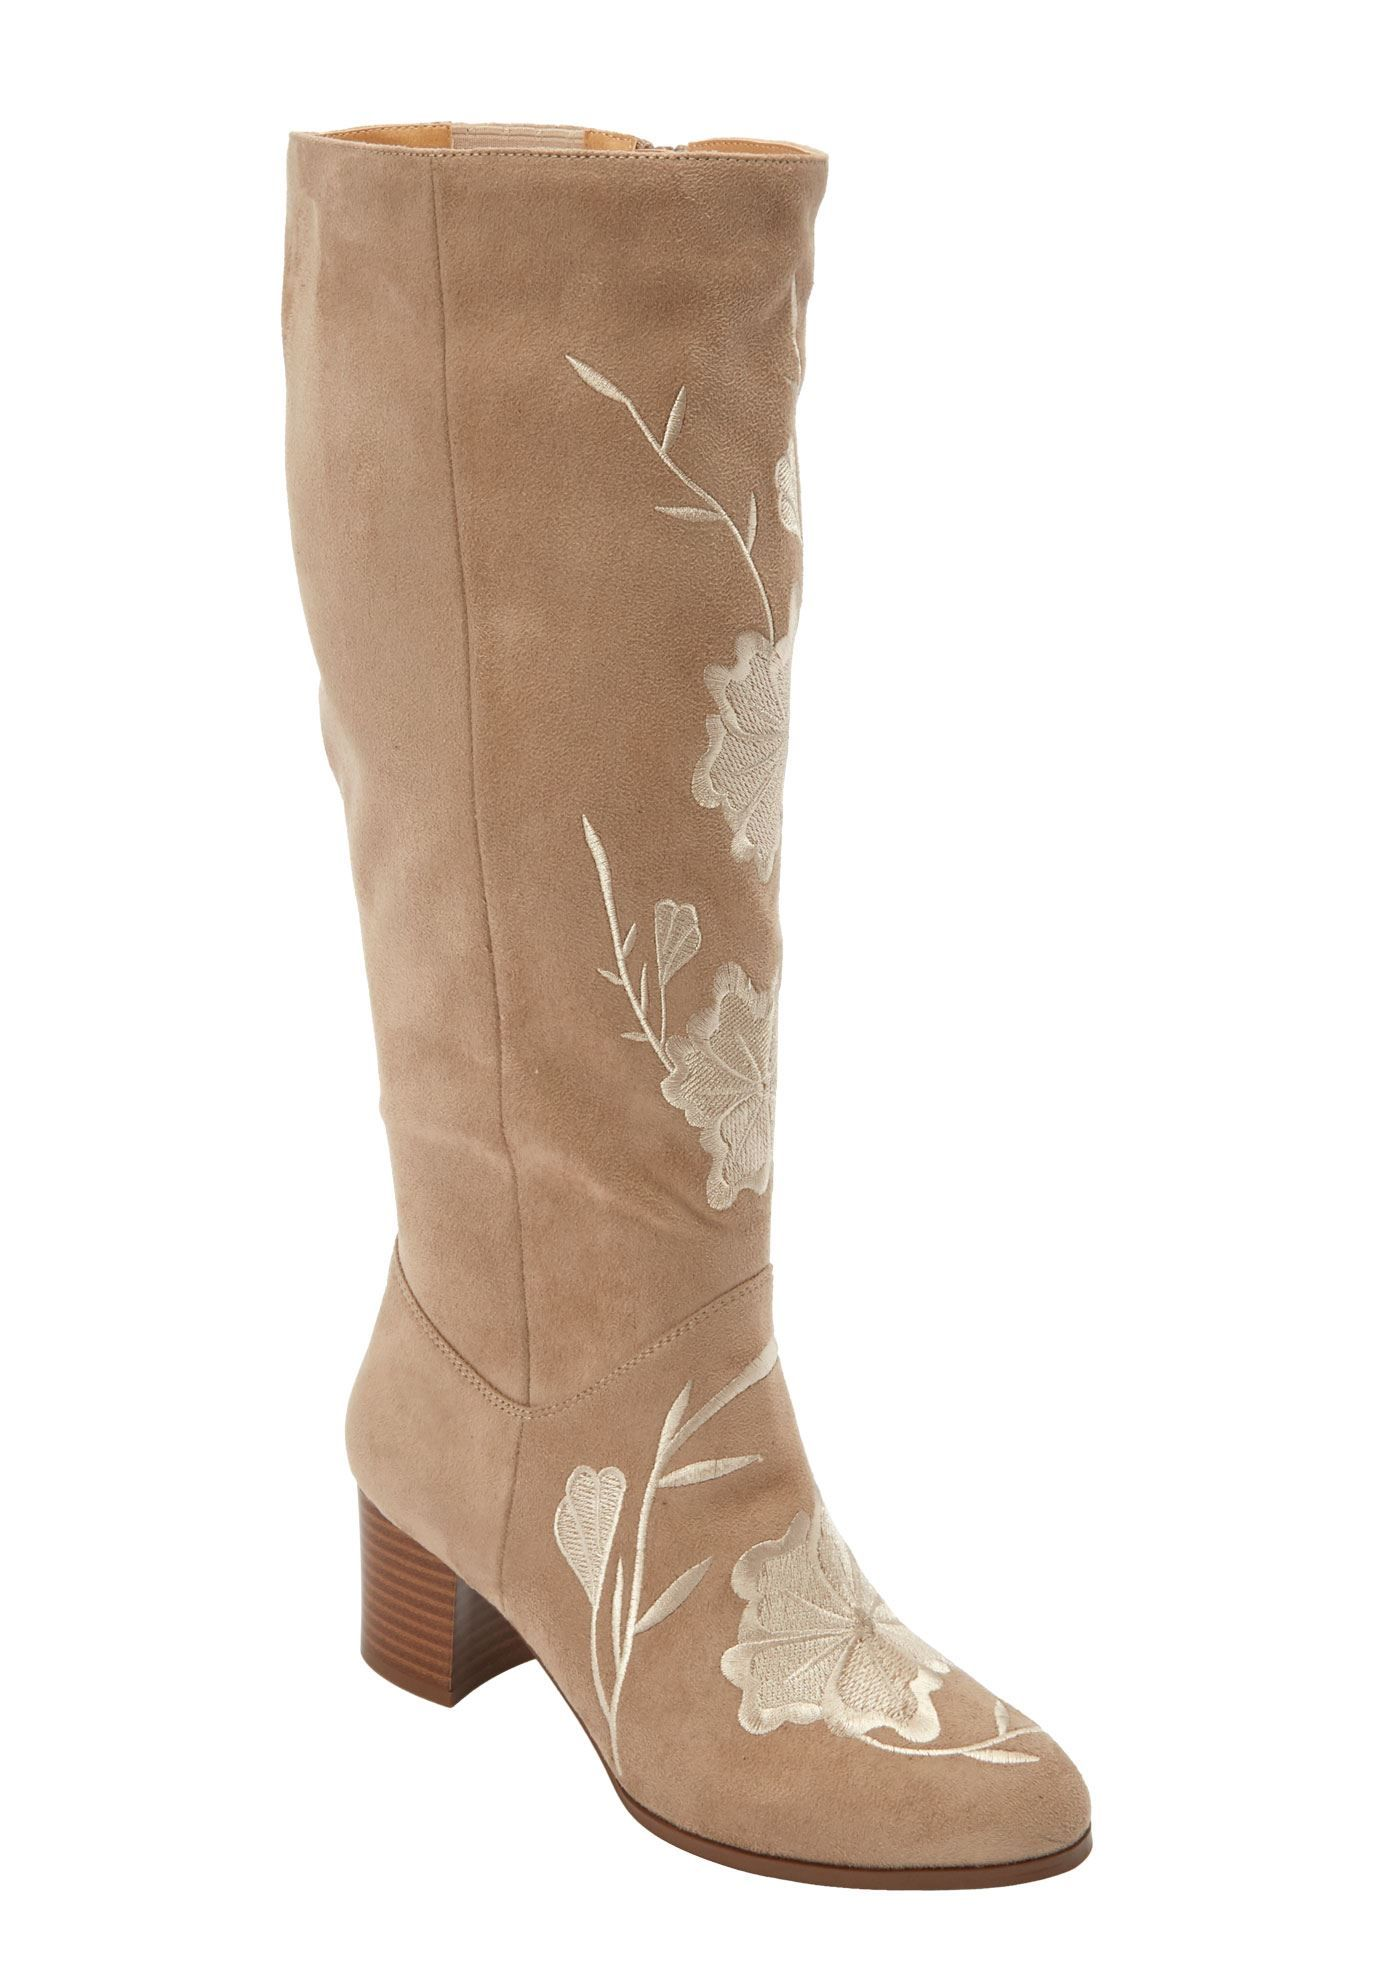 ee8b1a9cc80 The Ayana Wide Calf Boot by Comfortview - Women s Plus Size Clothing ...